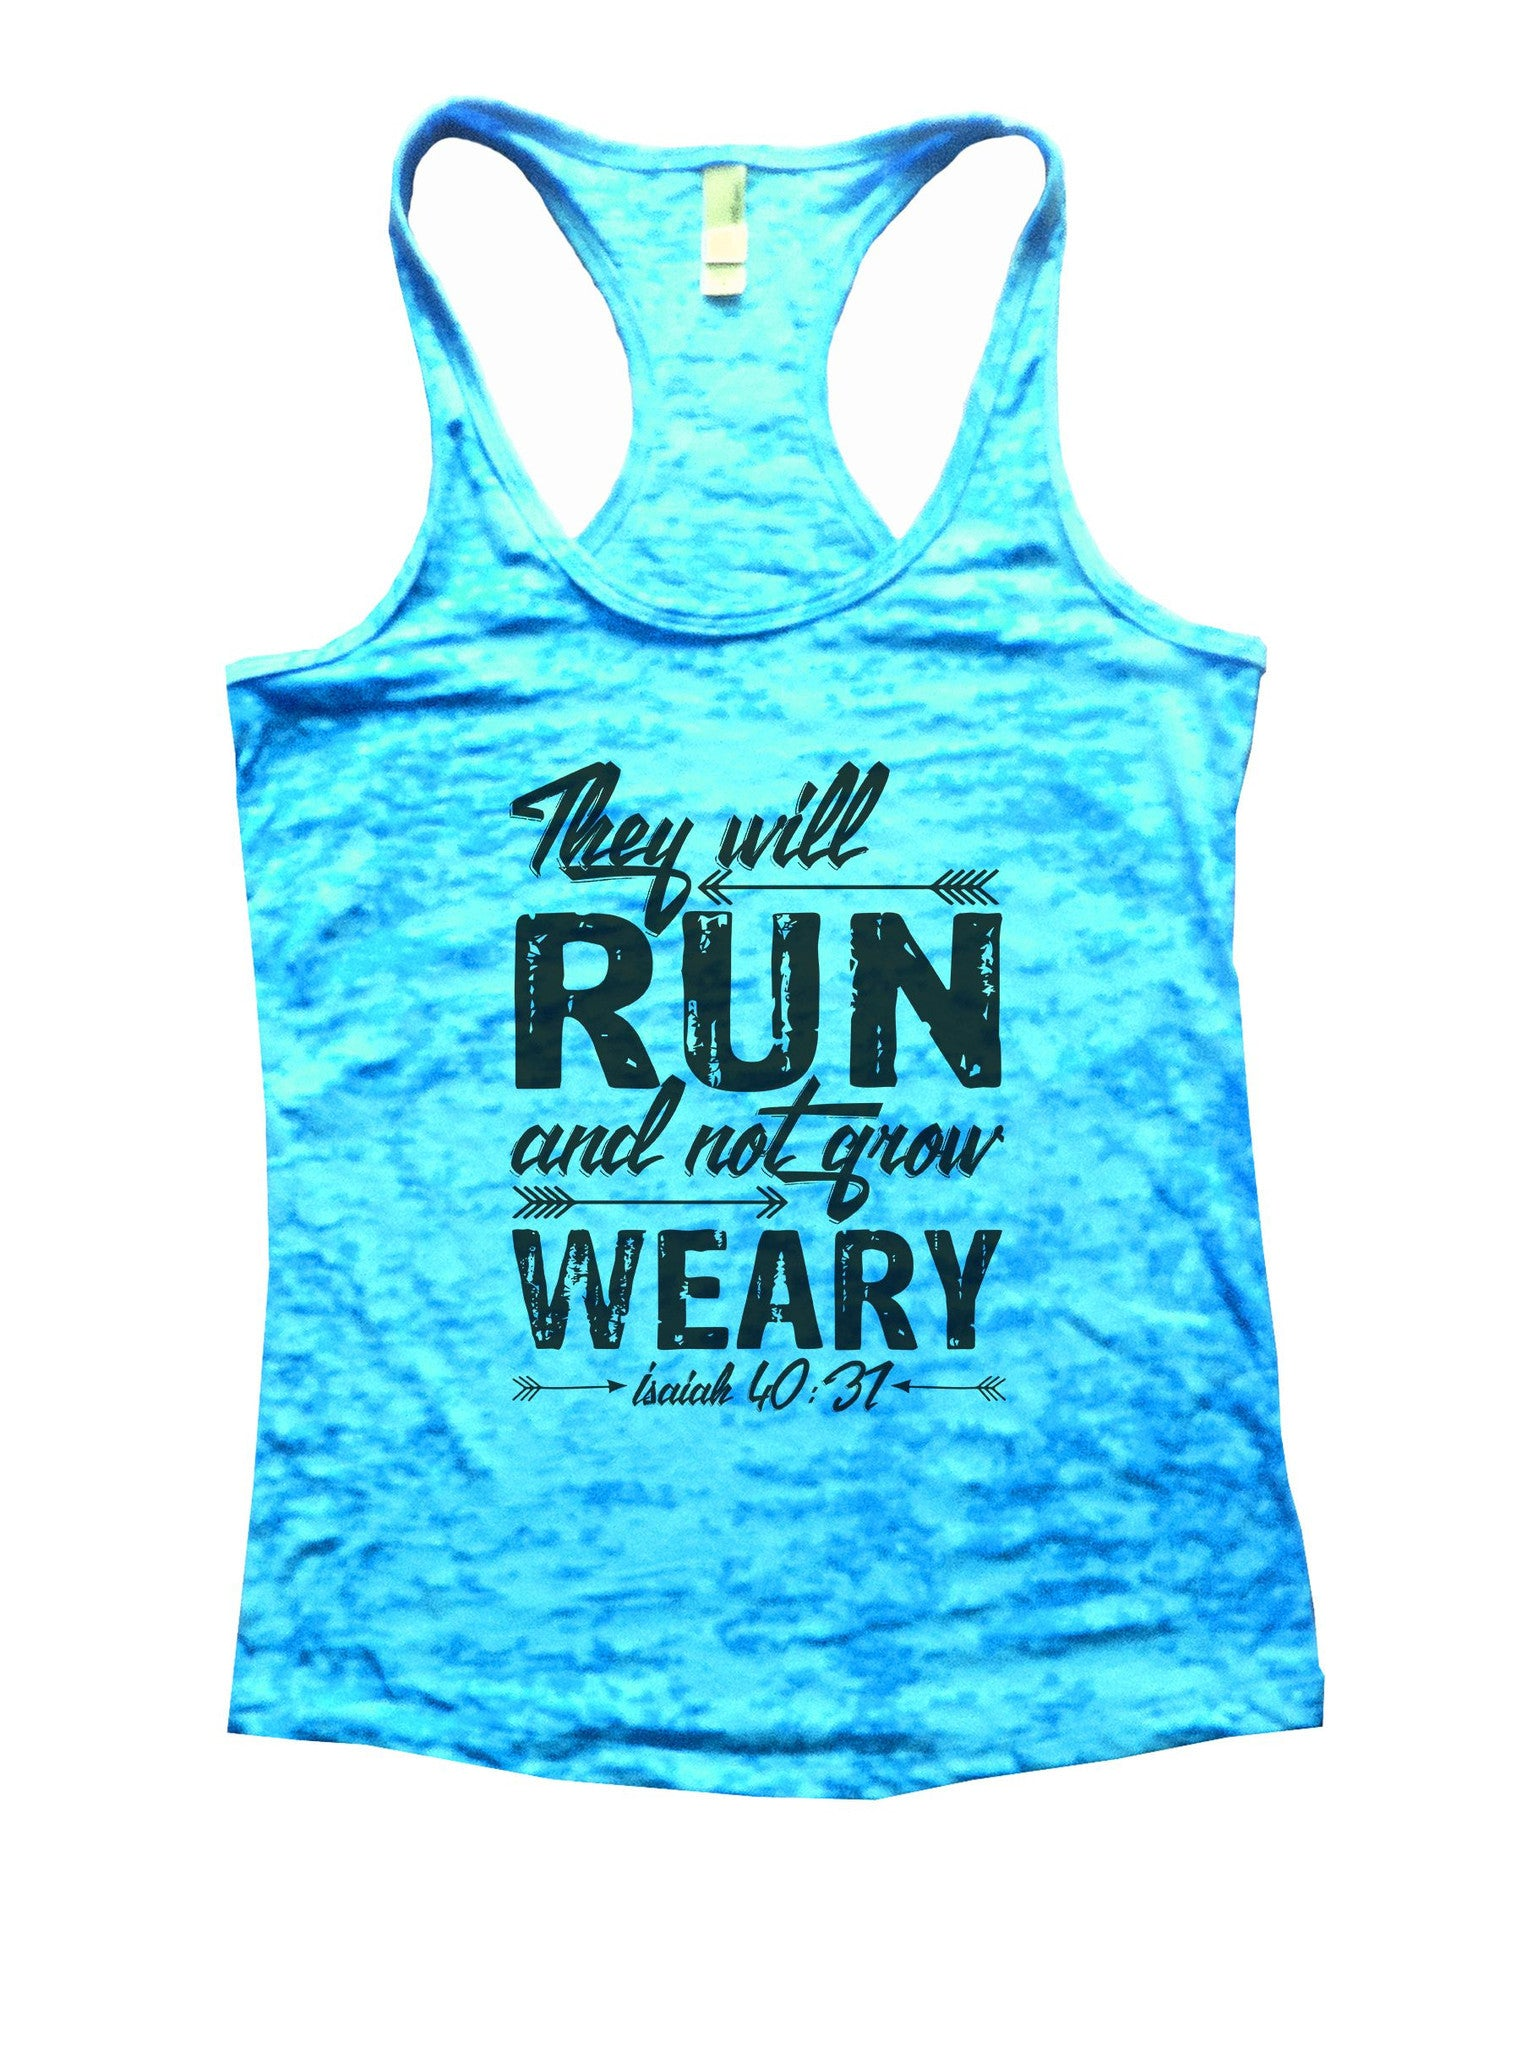 They Will Run And Not Grow Weary Isaiah 40:31 Burnout Tank Top By BurnoutTankTops.com - 1075 - Funny Shirts Tank Tops Burnouts and Triblends  - 4